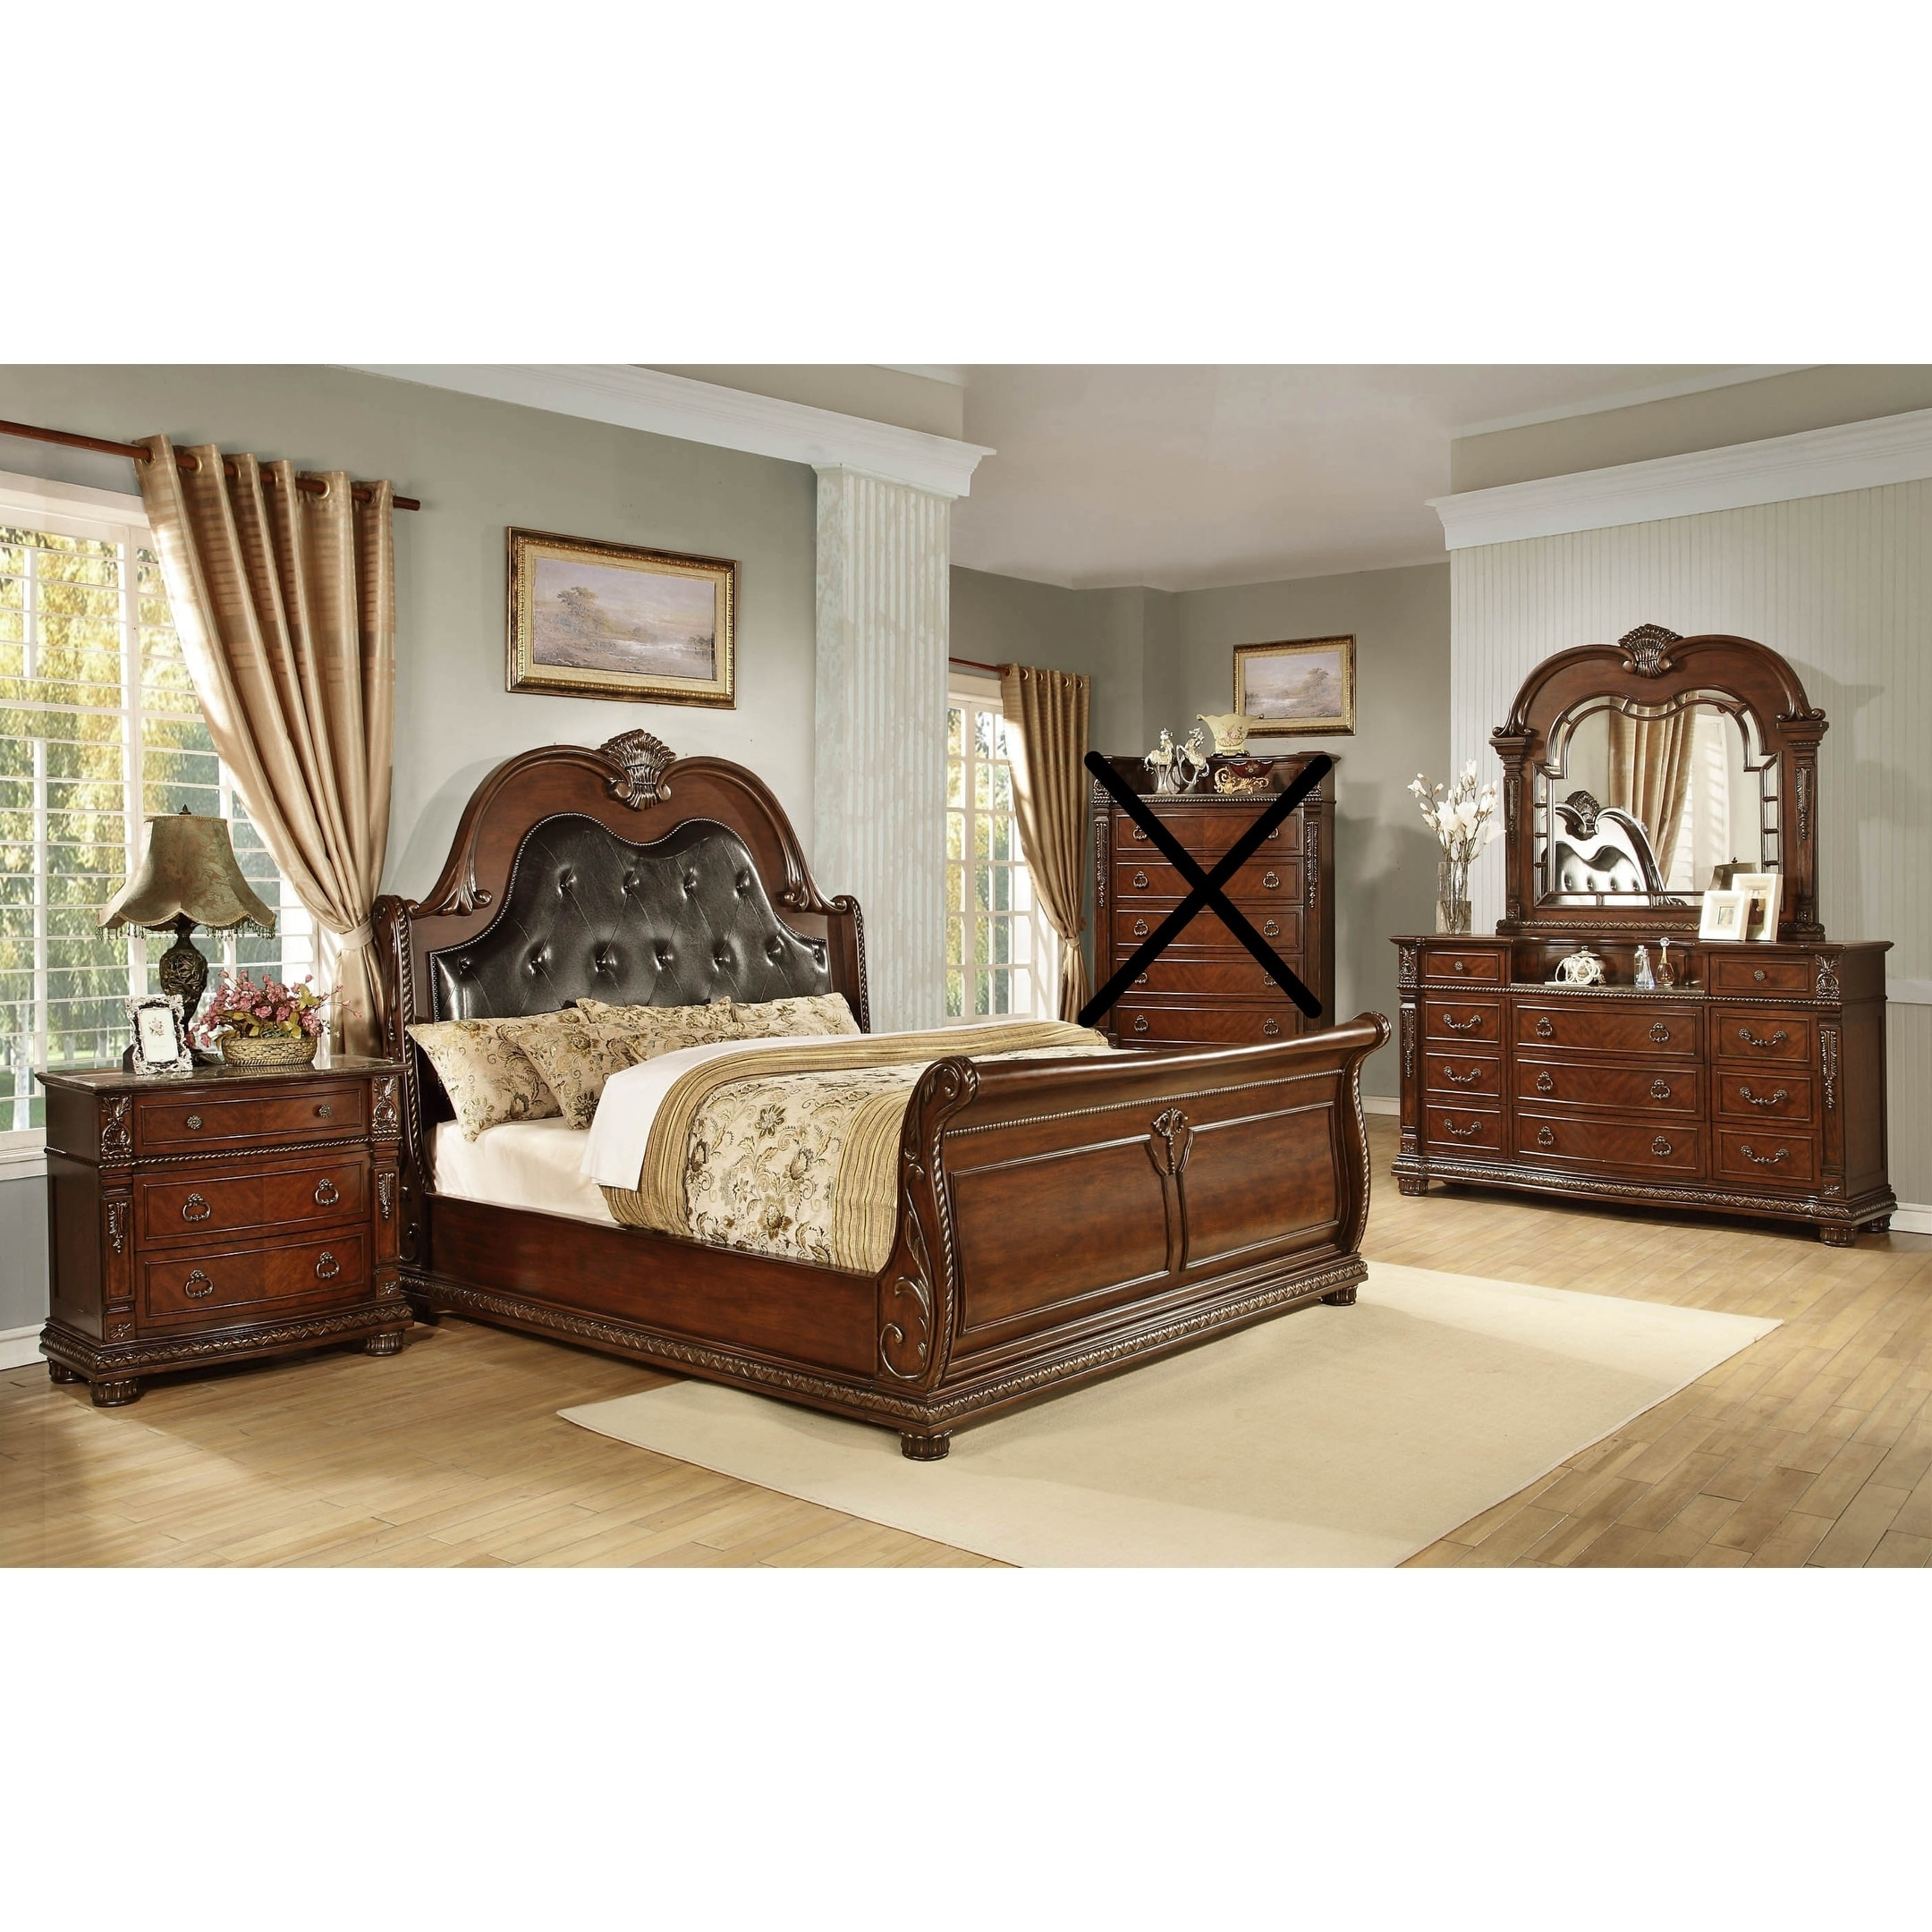 Traditional Style Palace Queen King Bedroom Set